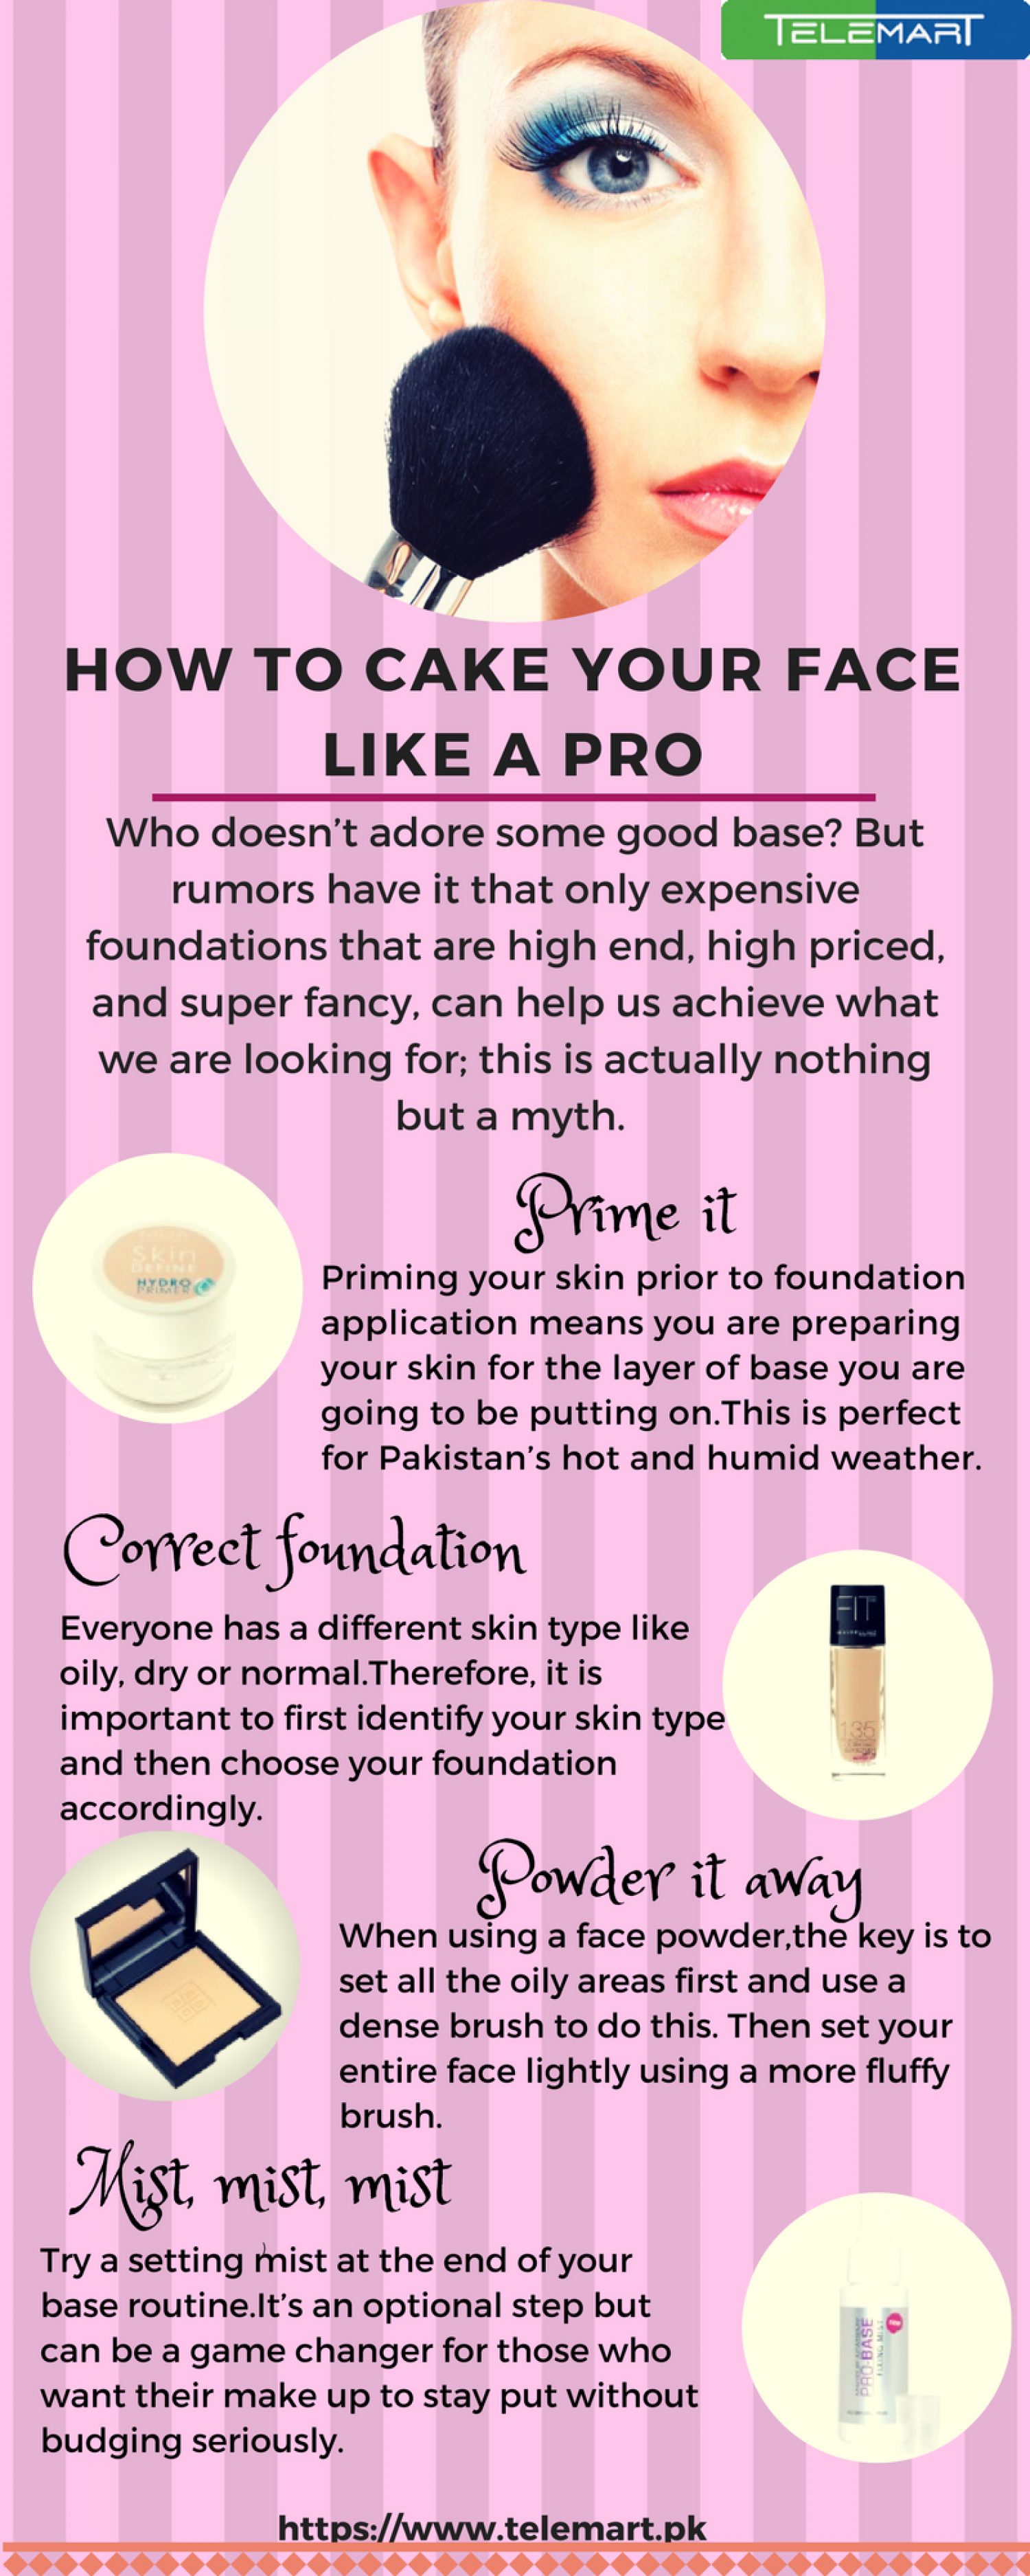 How to Cake Your Face like a Pro Infographic